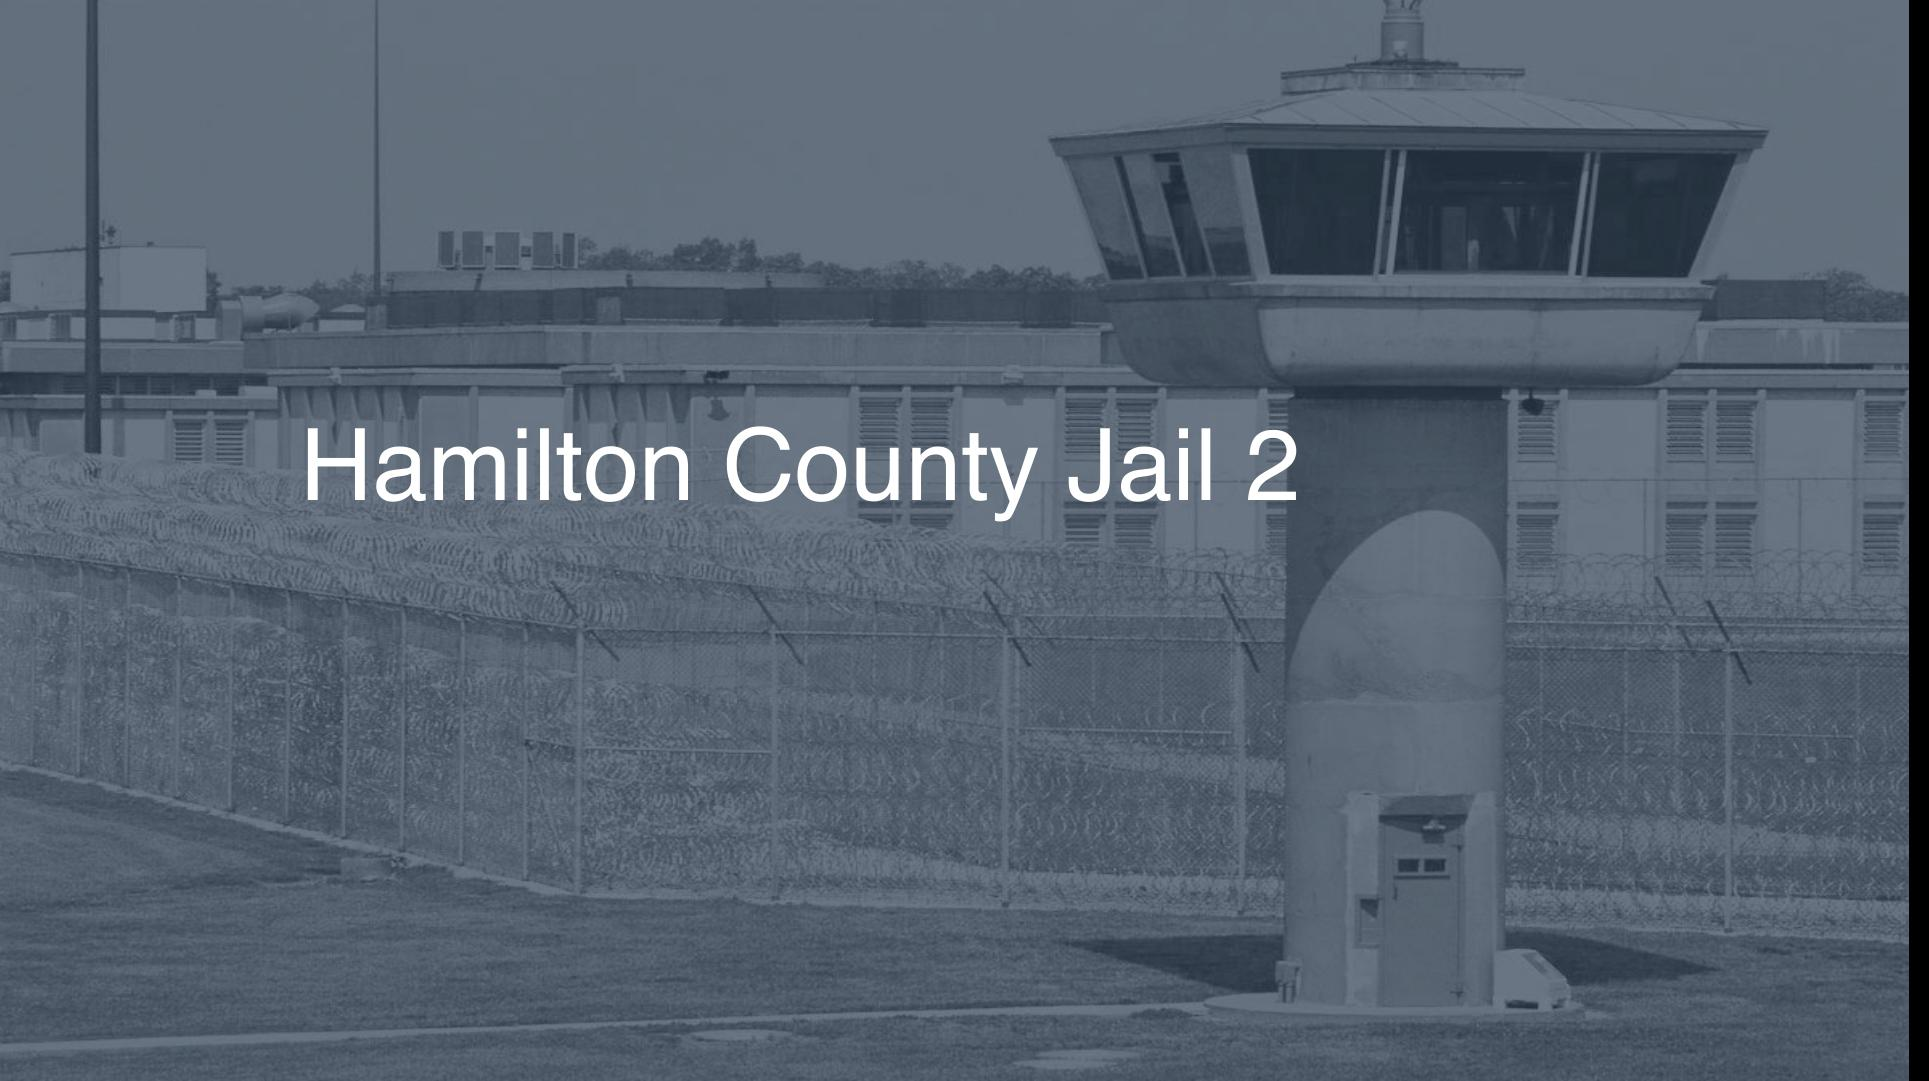 Hamilton County Jail Inmate Search, Lookup & Services - Pigeonly